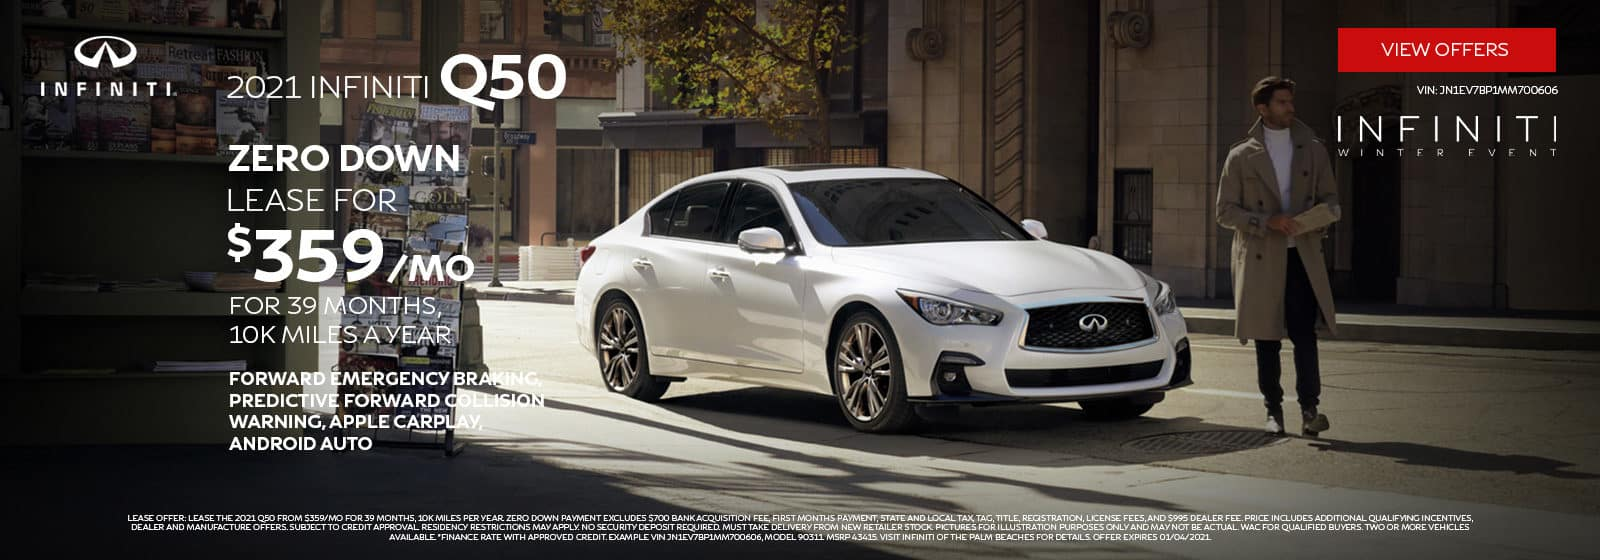 rmschumacher-infiniti-november-q50-specials-banner-1600×560